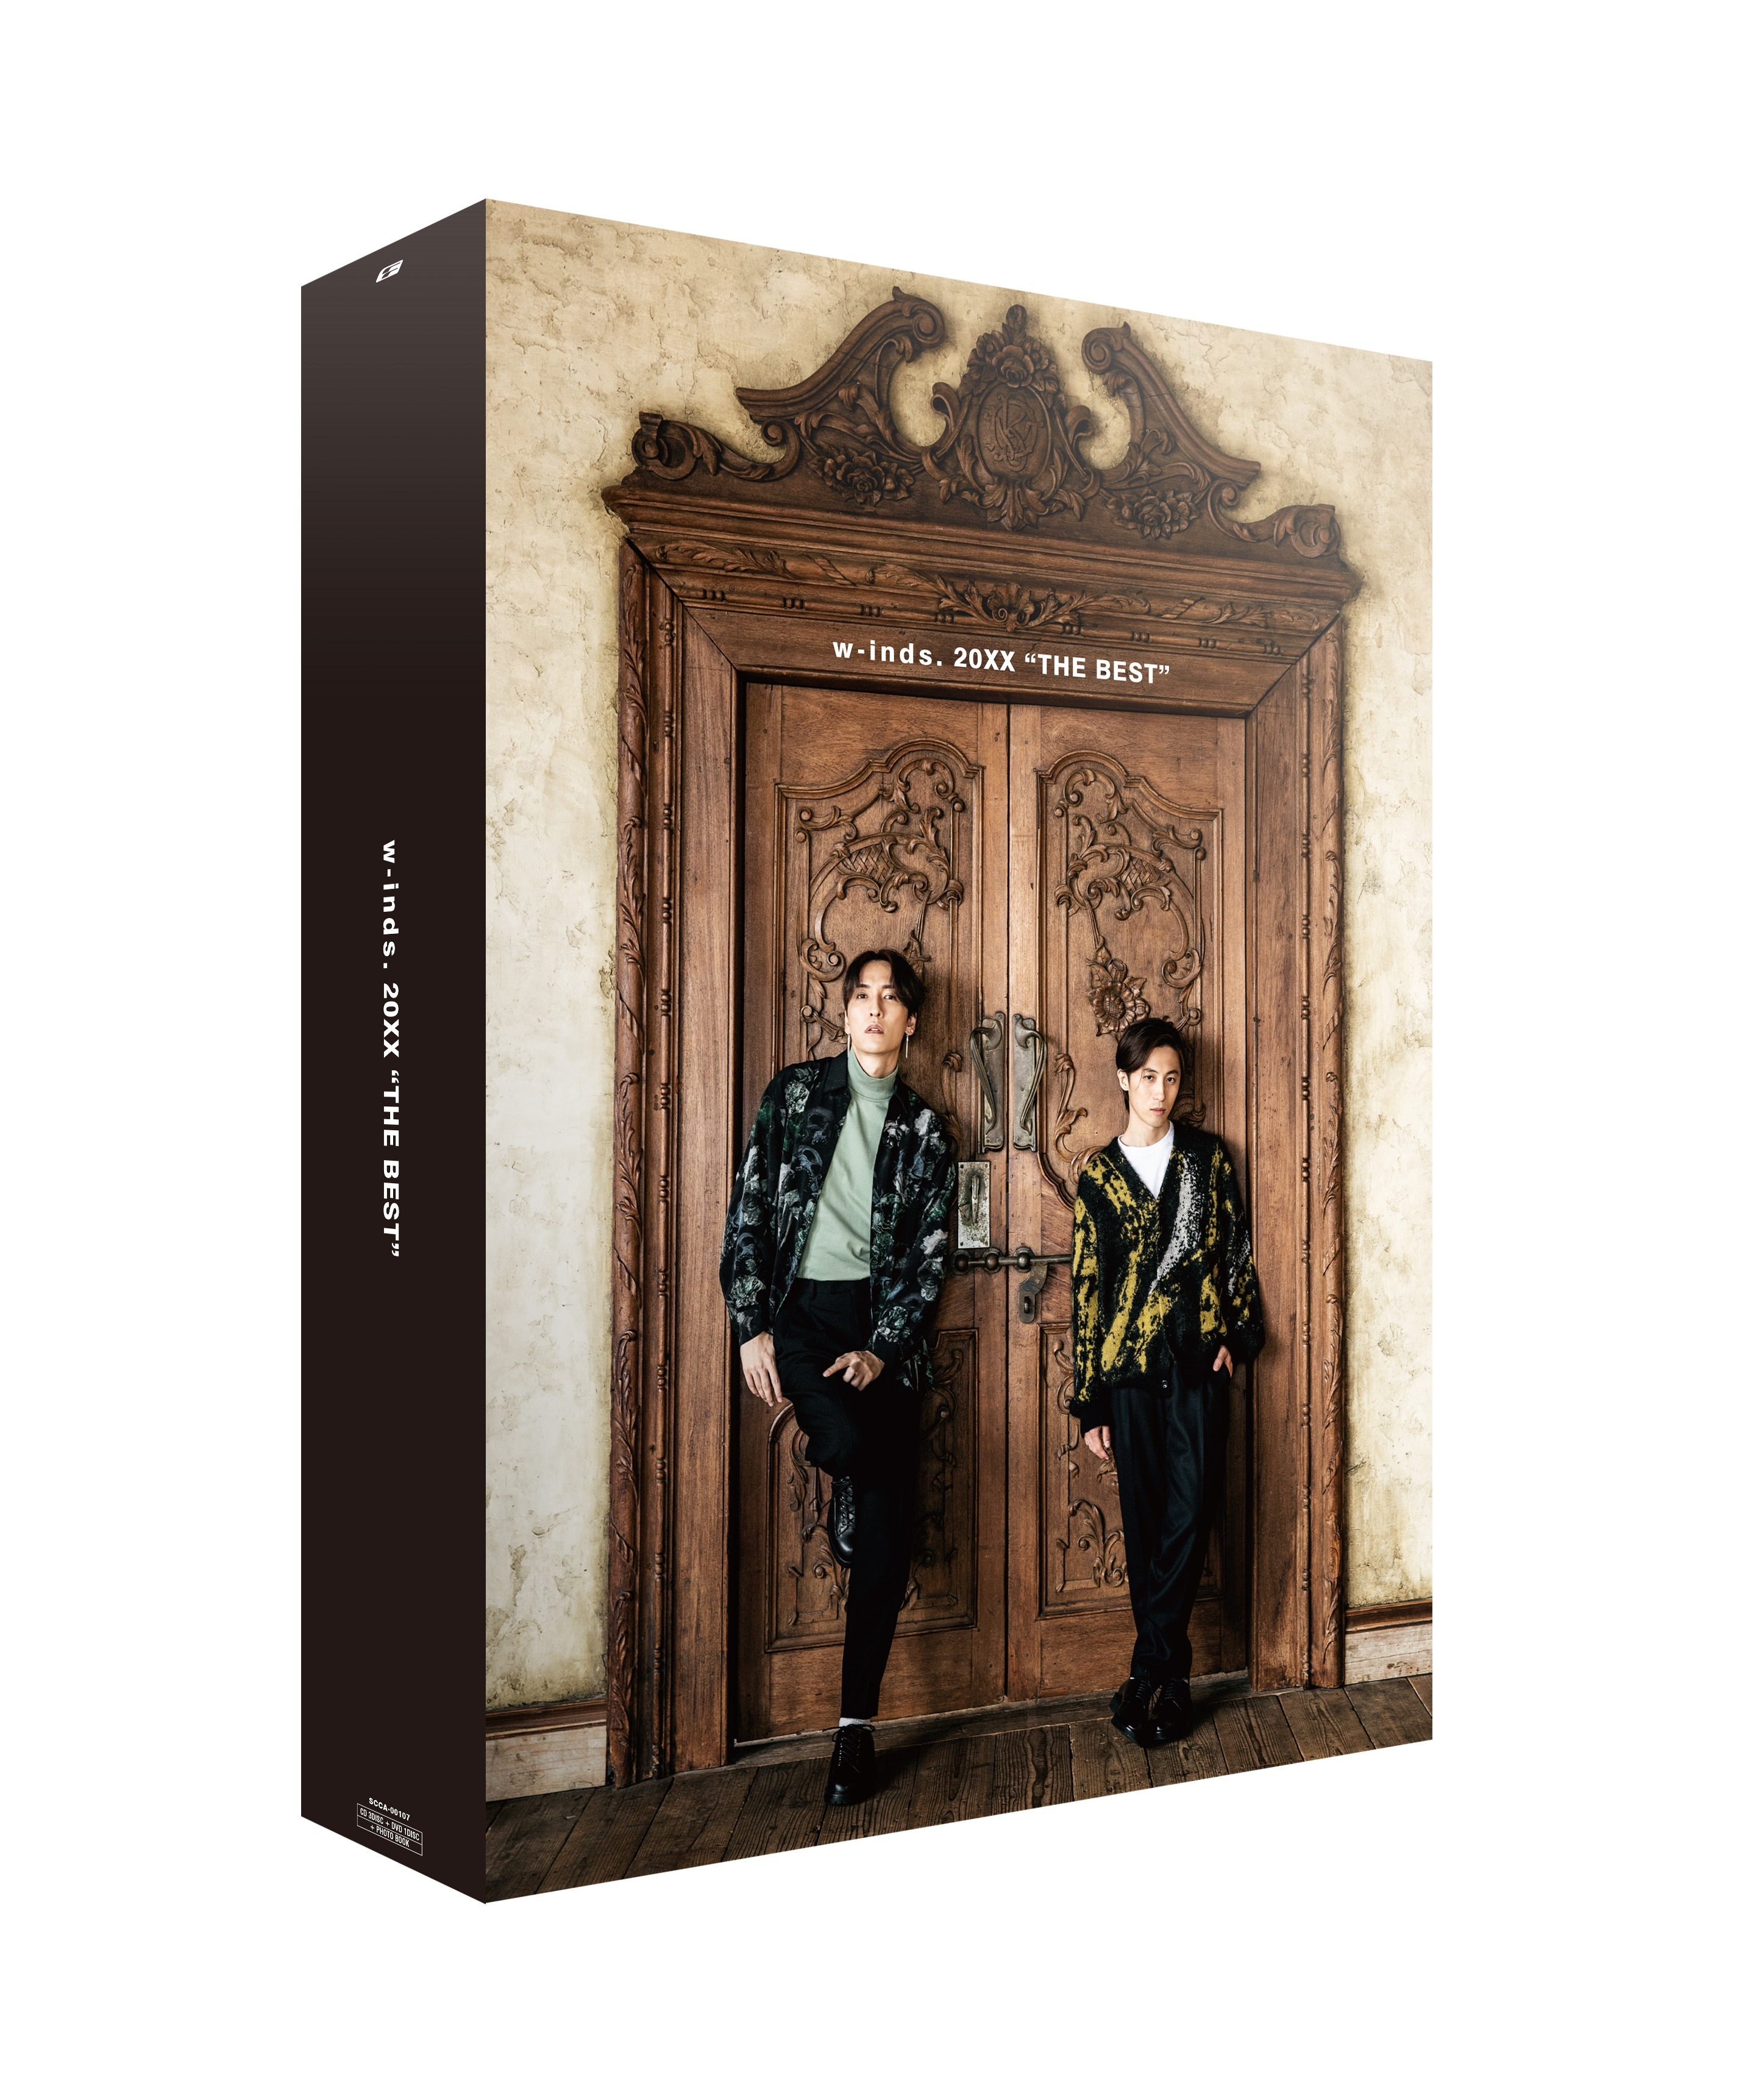 """【Ponycanyon Online Completely Limited Version】w-inds. Album 20XX""""THE BEST"""" (4CD+DVD+Photo Book)Release in March14th 2021 No.2"""